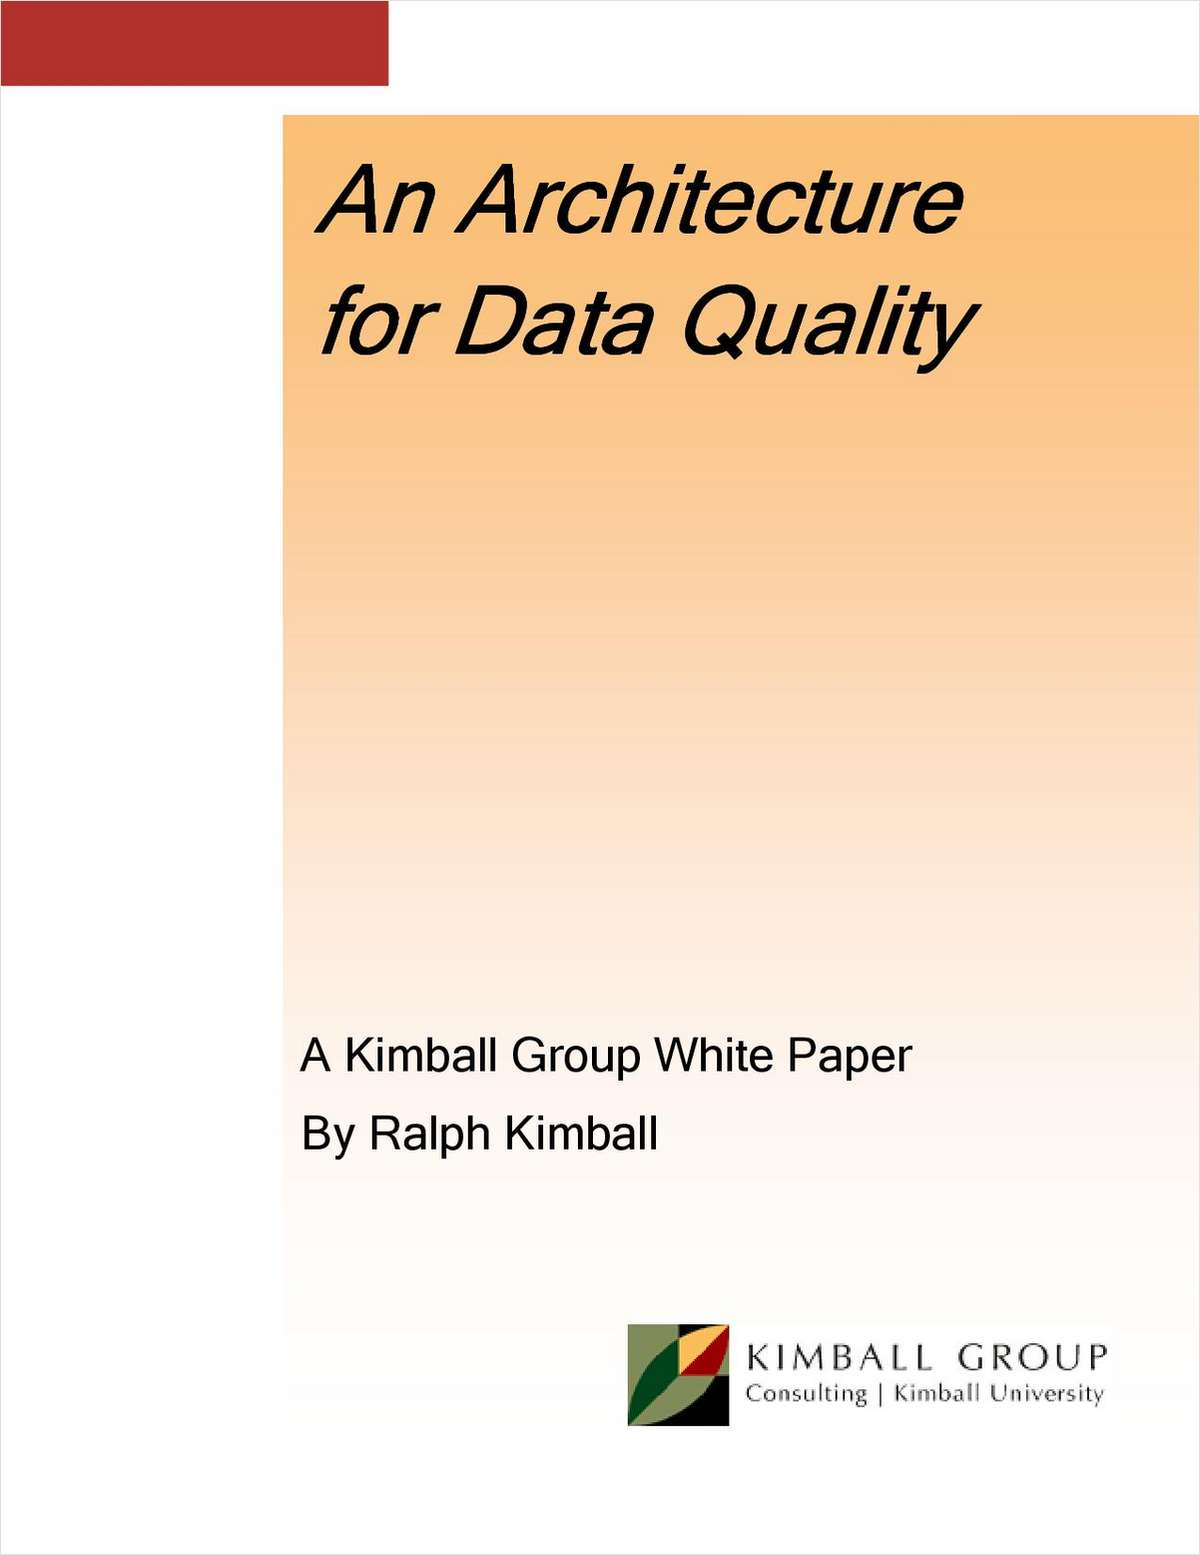 An Architecture for Data Quality